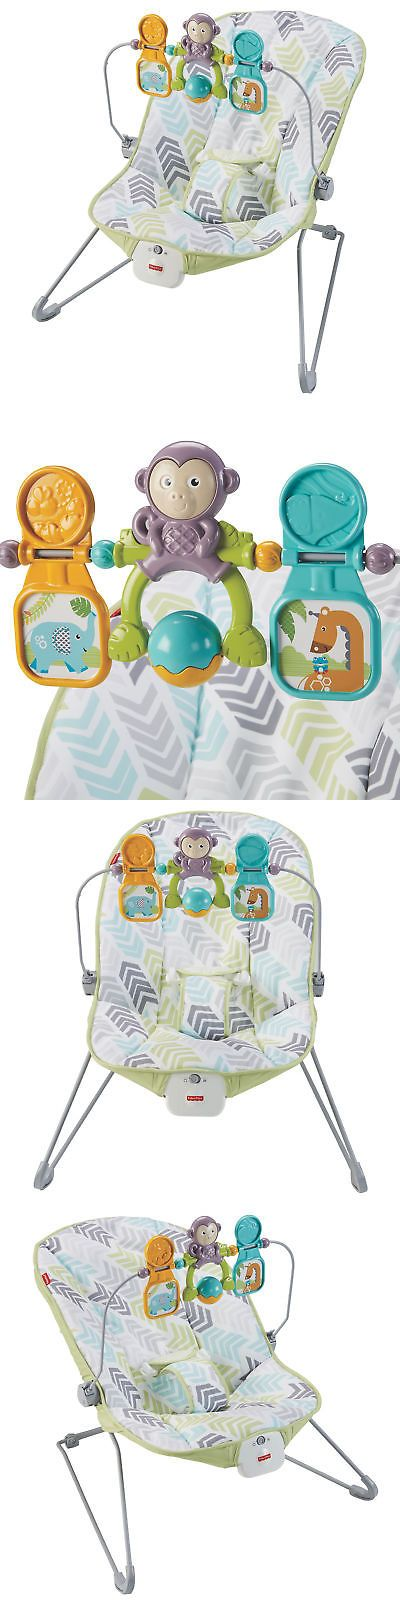 d5336f9ee Baby Jumping Exercisers 117032  Fisher-Price Baby S Bouncer Baby ...